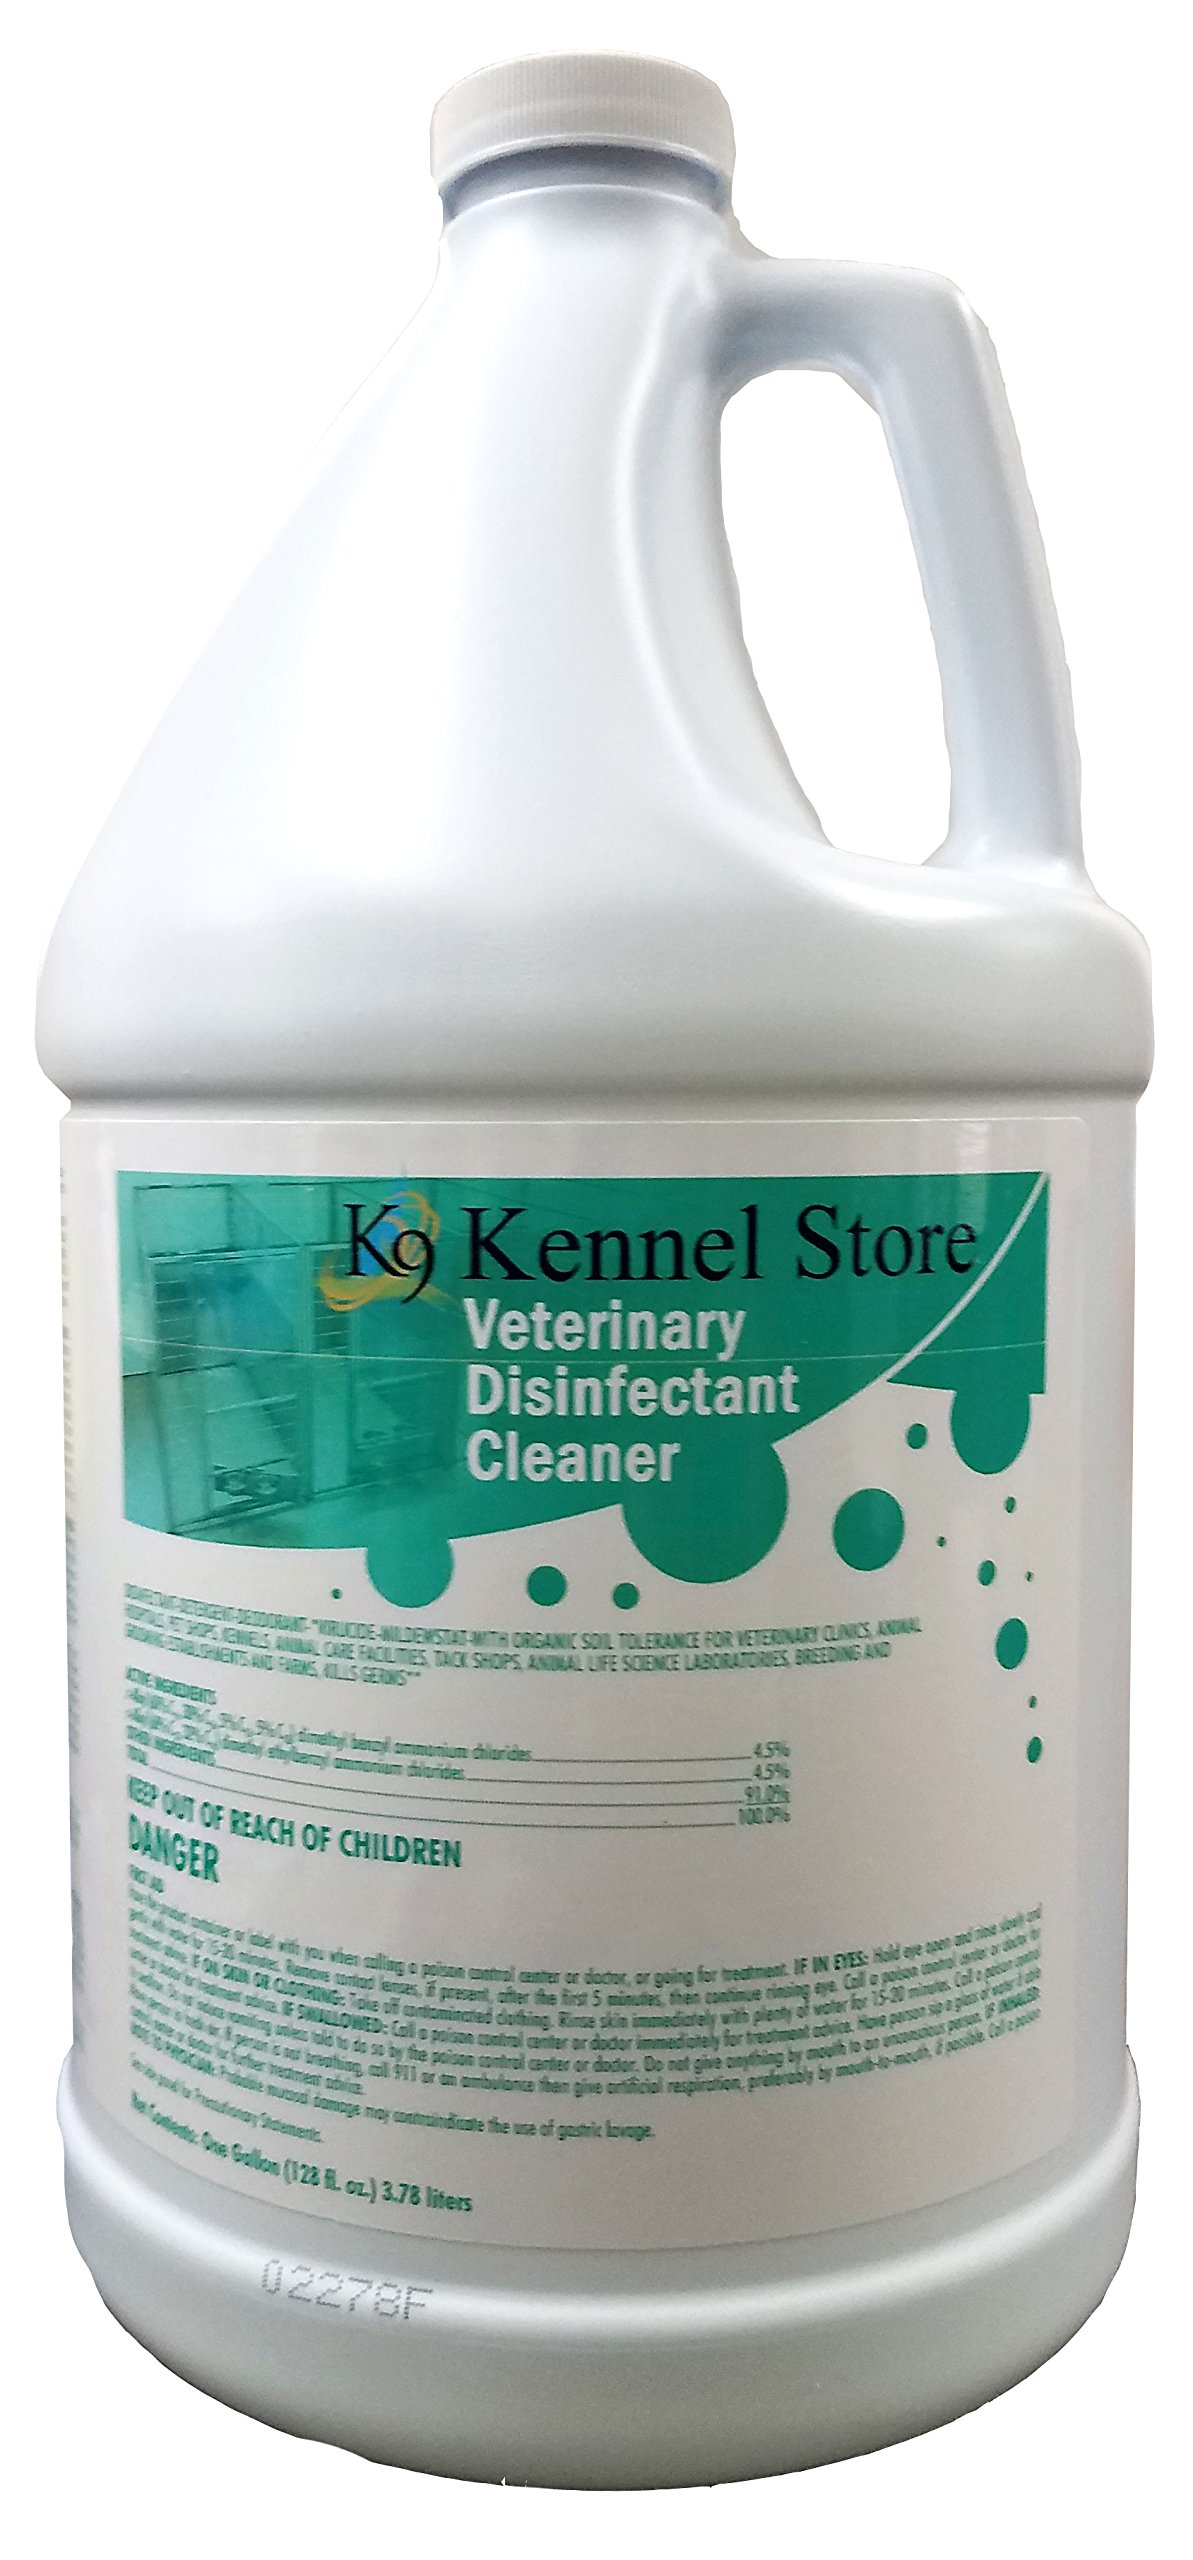 Cove Products Residential/Commercial Kennel Disinfectant (1 Gallon) by Cove Products